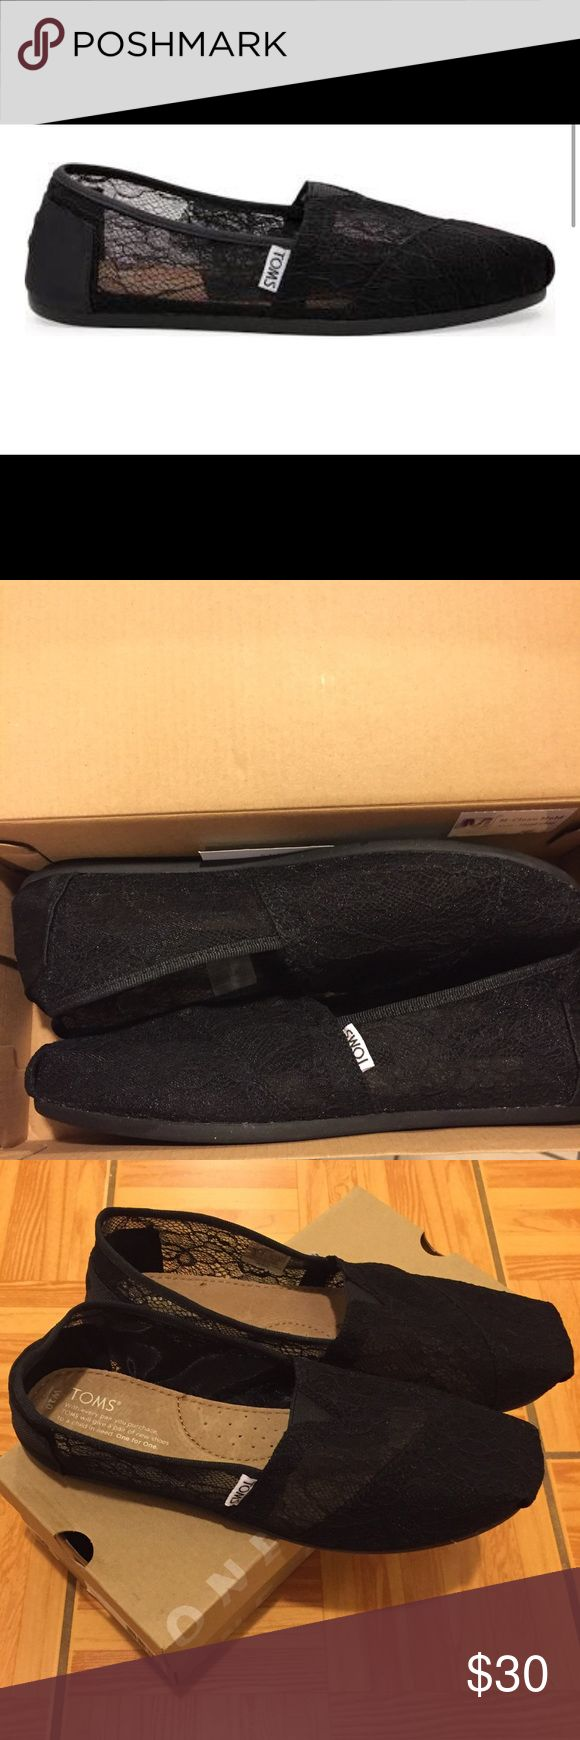 NIB TOMS Black Lace Classics Slip-On Shoes Sheer beauty. A transparent lace upper makes this Classic a perfectly airy complement to any fresh, casual look. TOMS toe-stitch and elastic V for easy on and off Classic suede insole with cushion for comfort Latex arch insert for added support TOMS classic one-piece outsole for flexibility and durability •New in Box •Never worn! •No Tags, but does come with box  👾NO TRADES 👾OFFERS WELCOMED! 👾BUNDLE TO SAVE  👾FEEL FREE TO ASK ANY QUESTIONS TOMS…